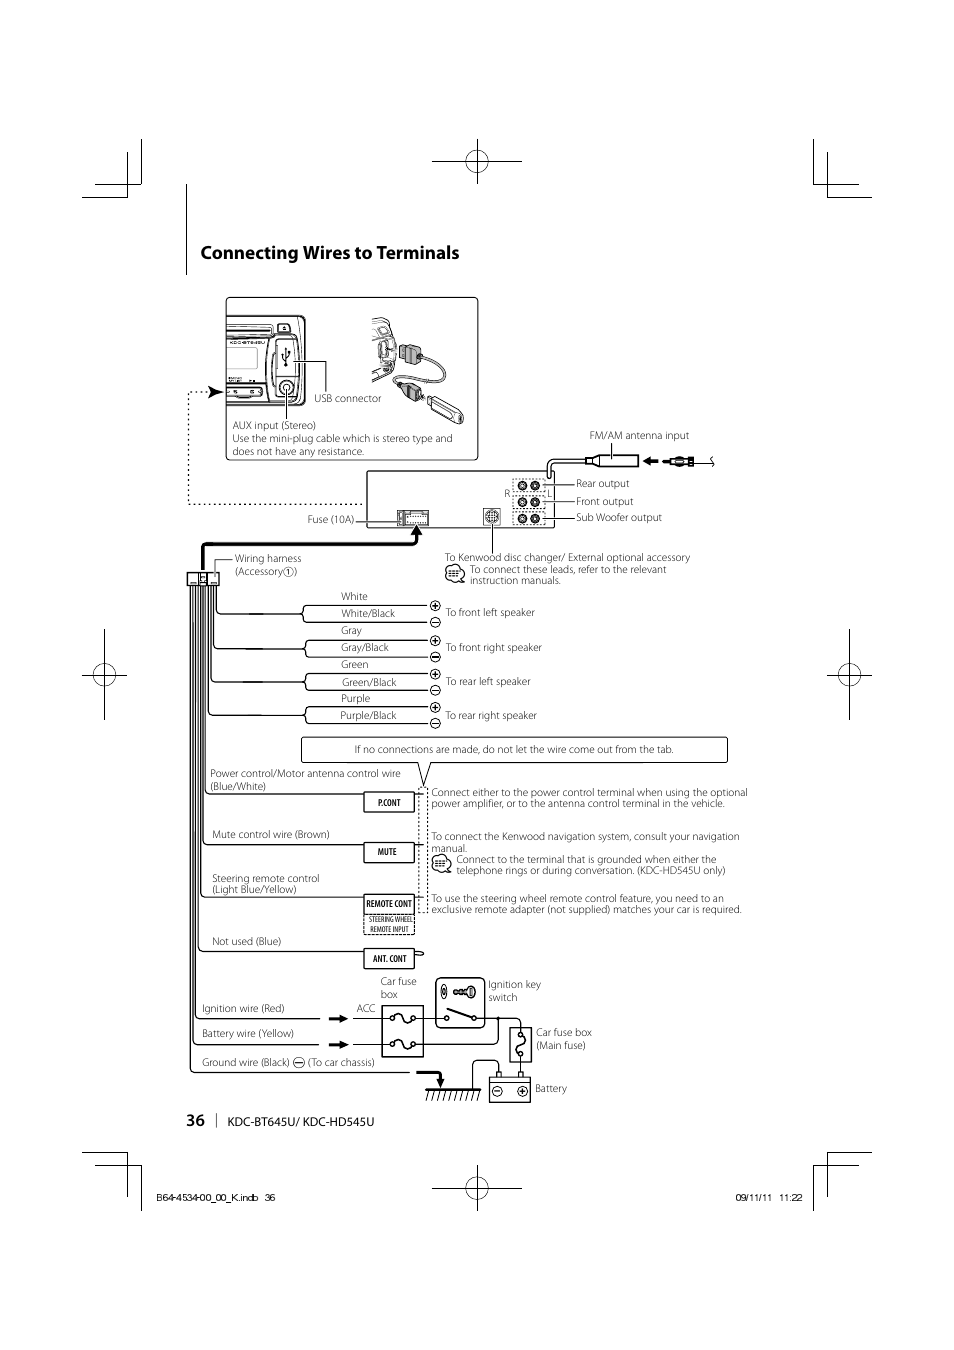 Kenwood Kdc 448u Wiring Diagram Great Installation Of 252u Car Stereo Schematic Name Rh 6 20 1 Systembeimroulette De Colors